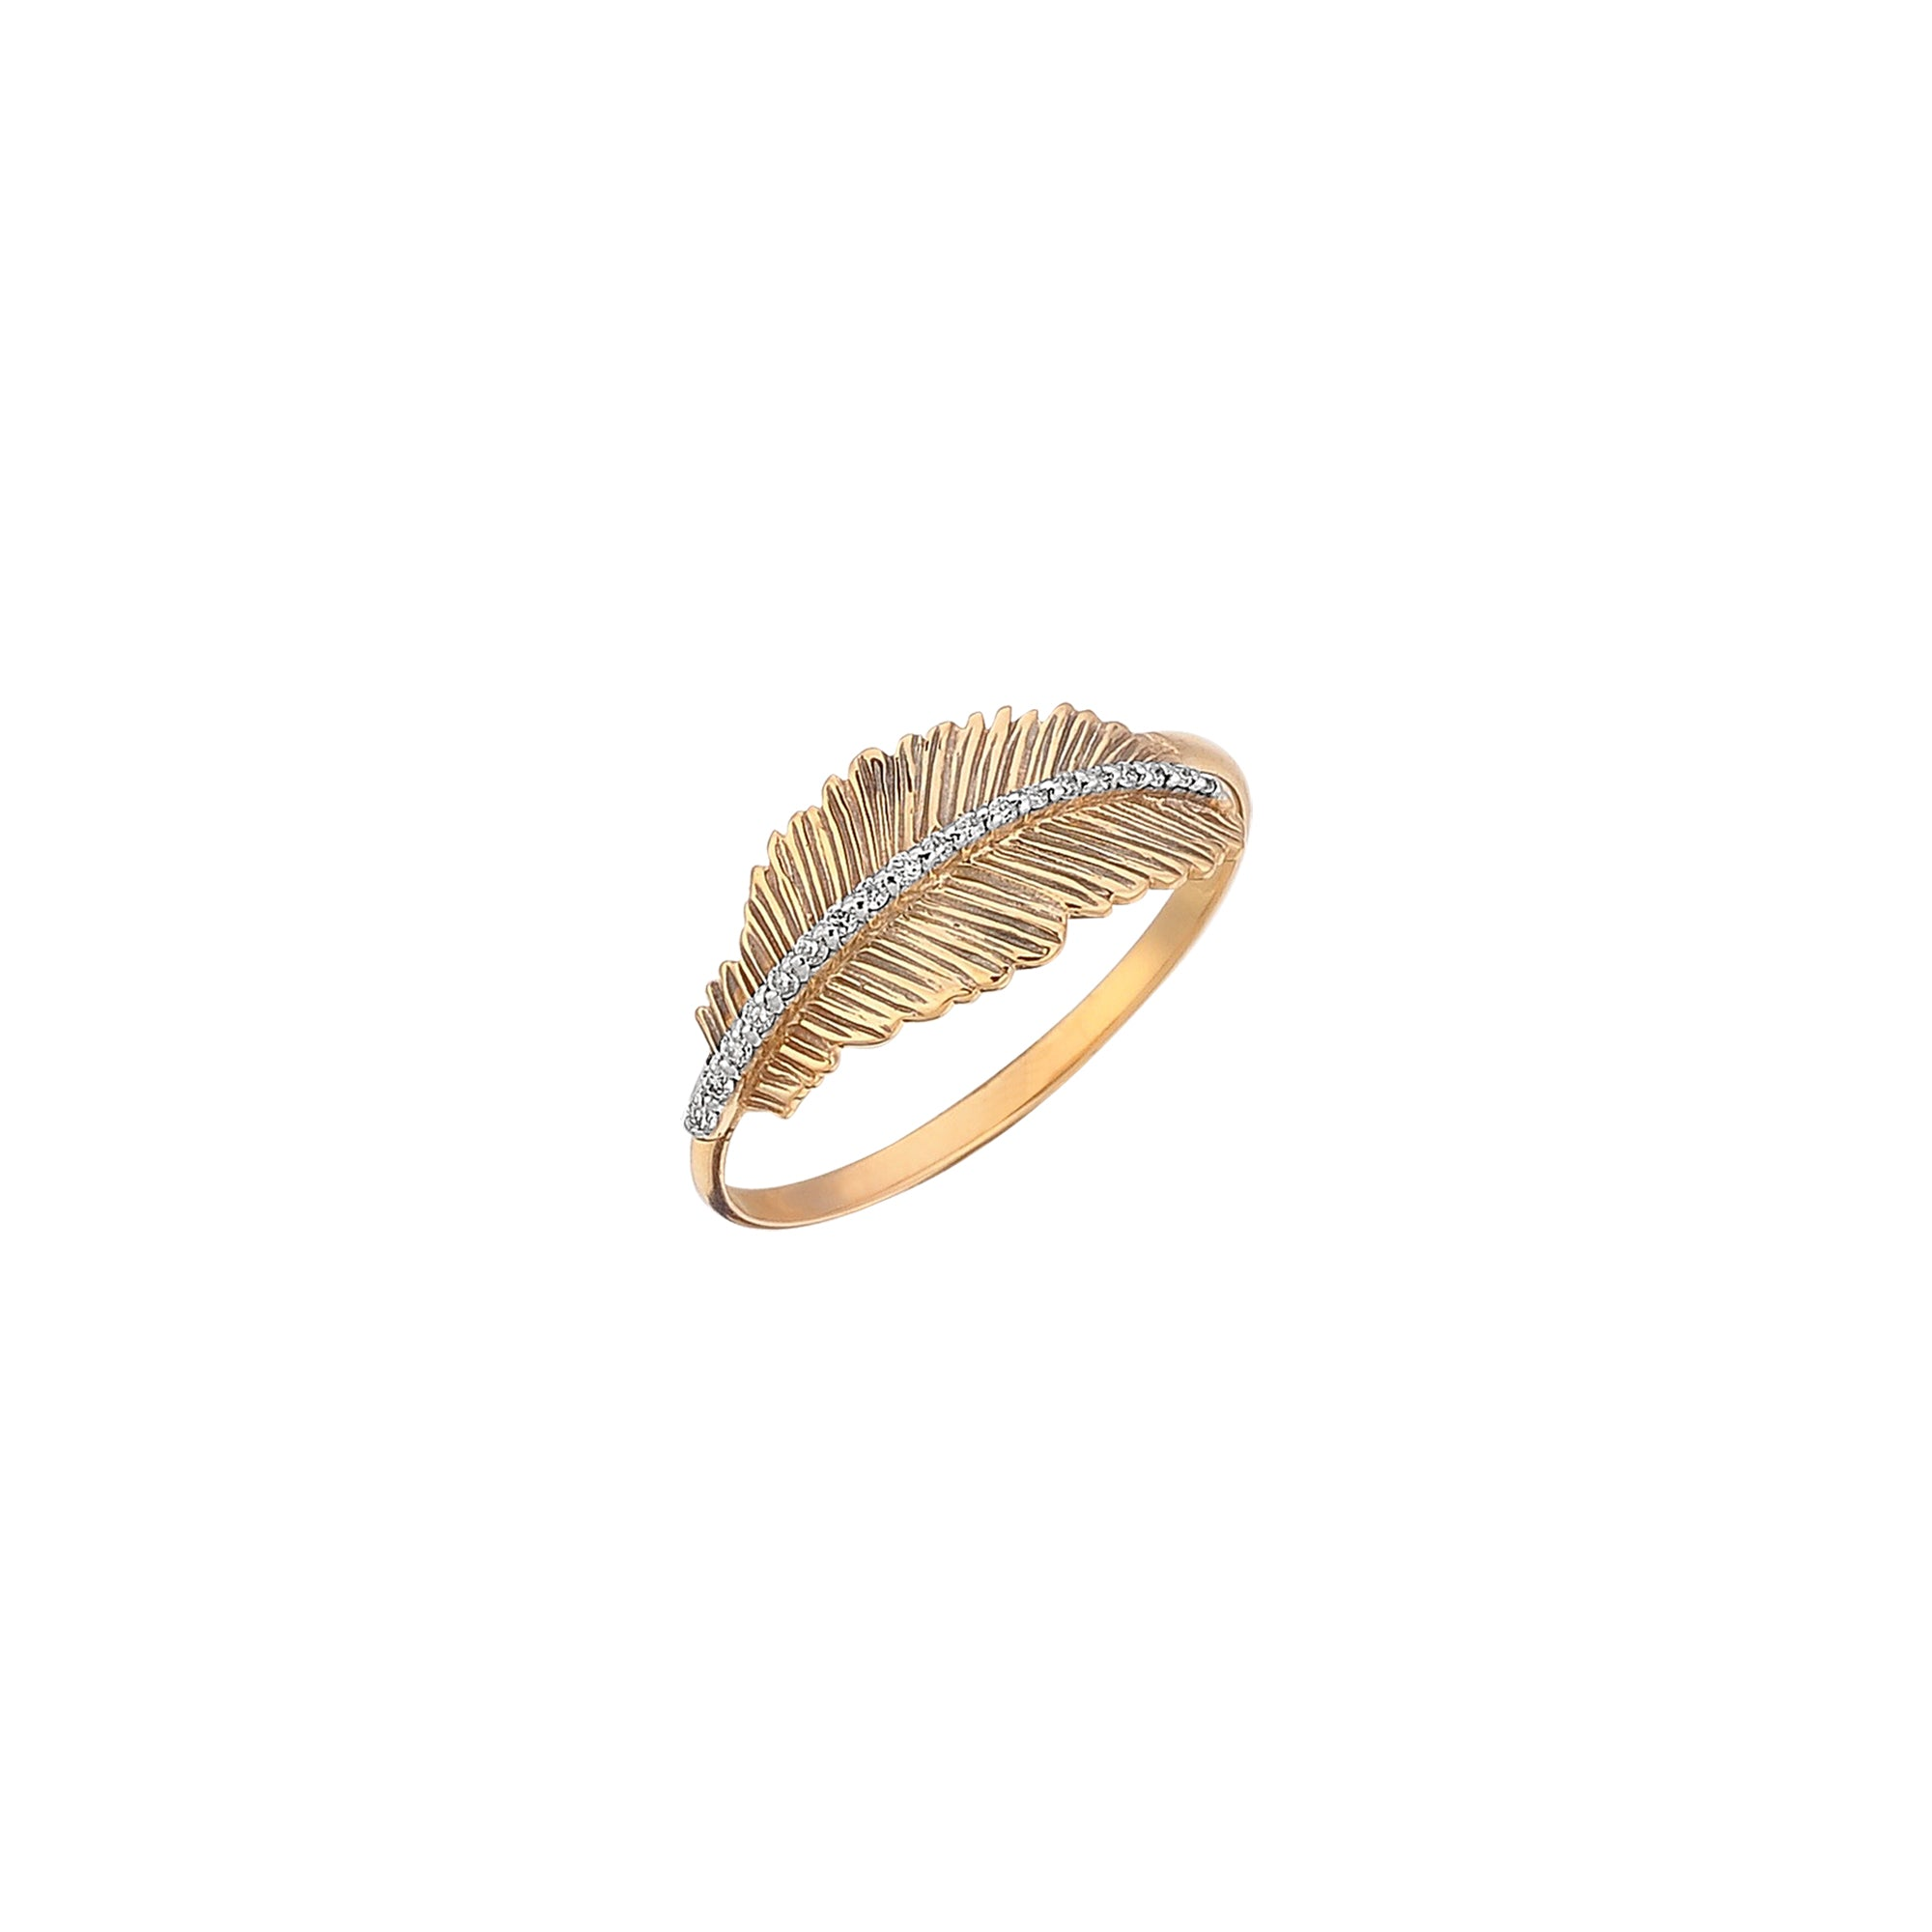 Raven Feather Diamond Ring - Kismet by Milka - Rings | Broken English Jewelry